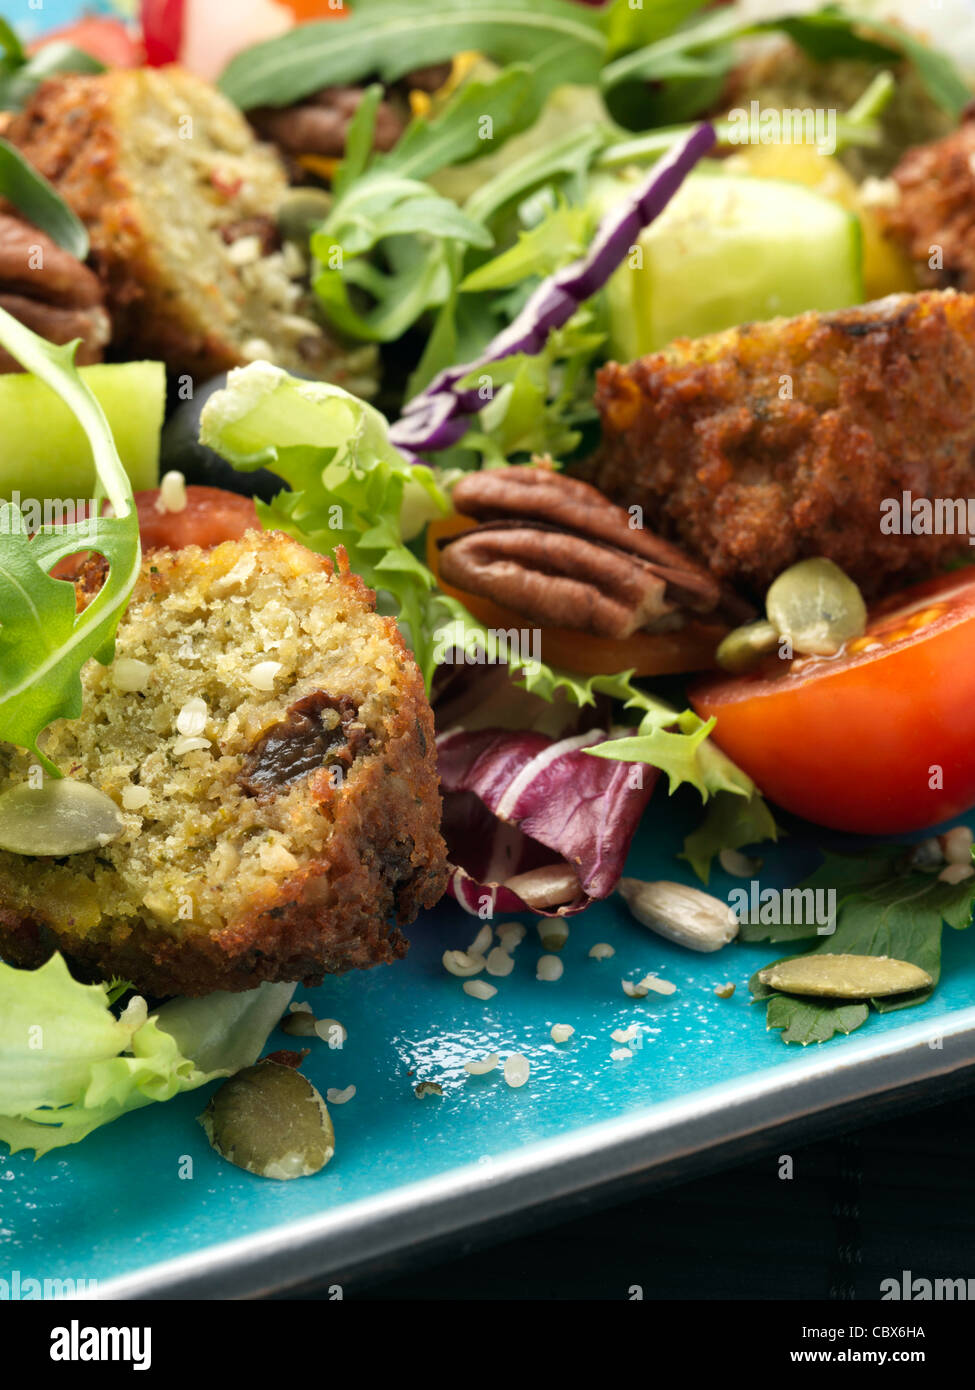 falafel salad Stock Photo